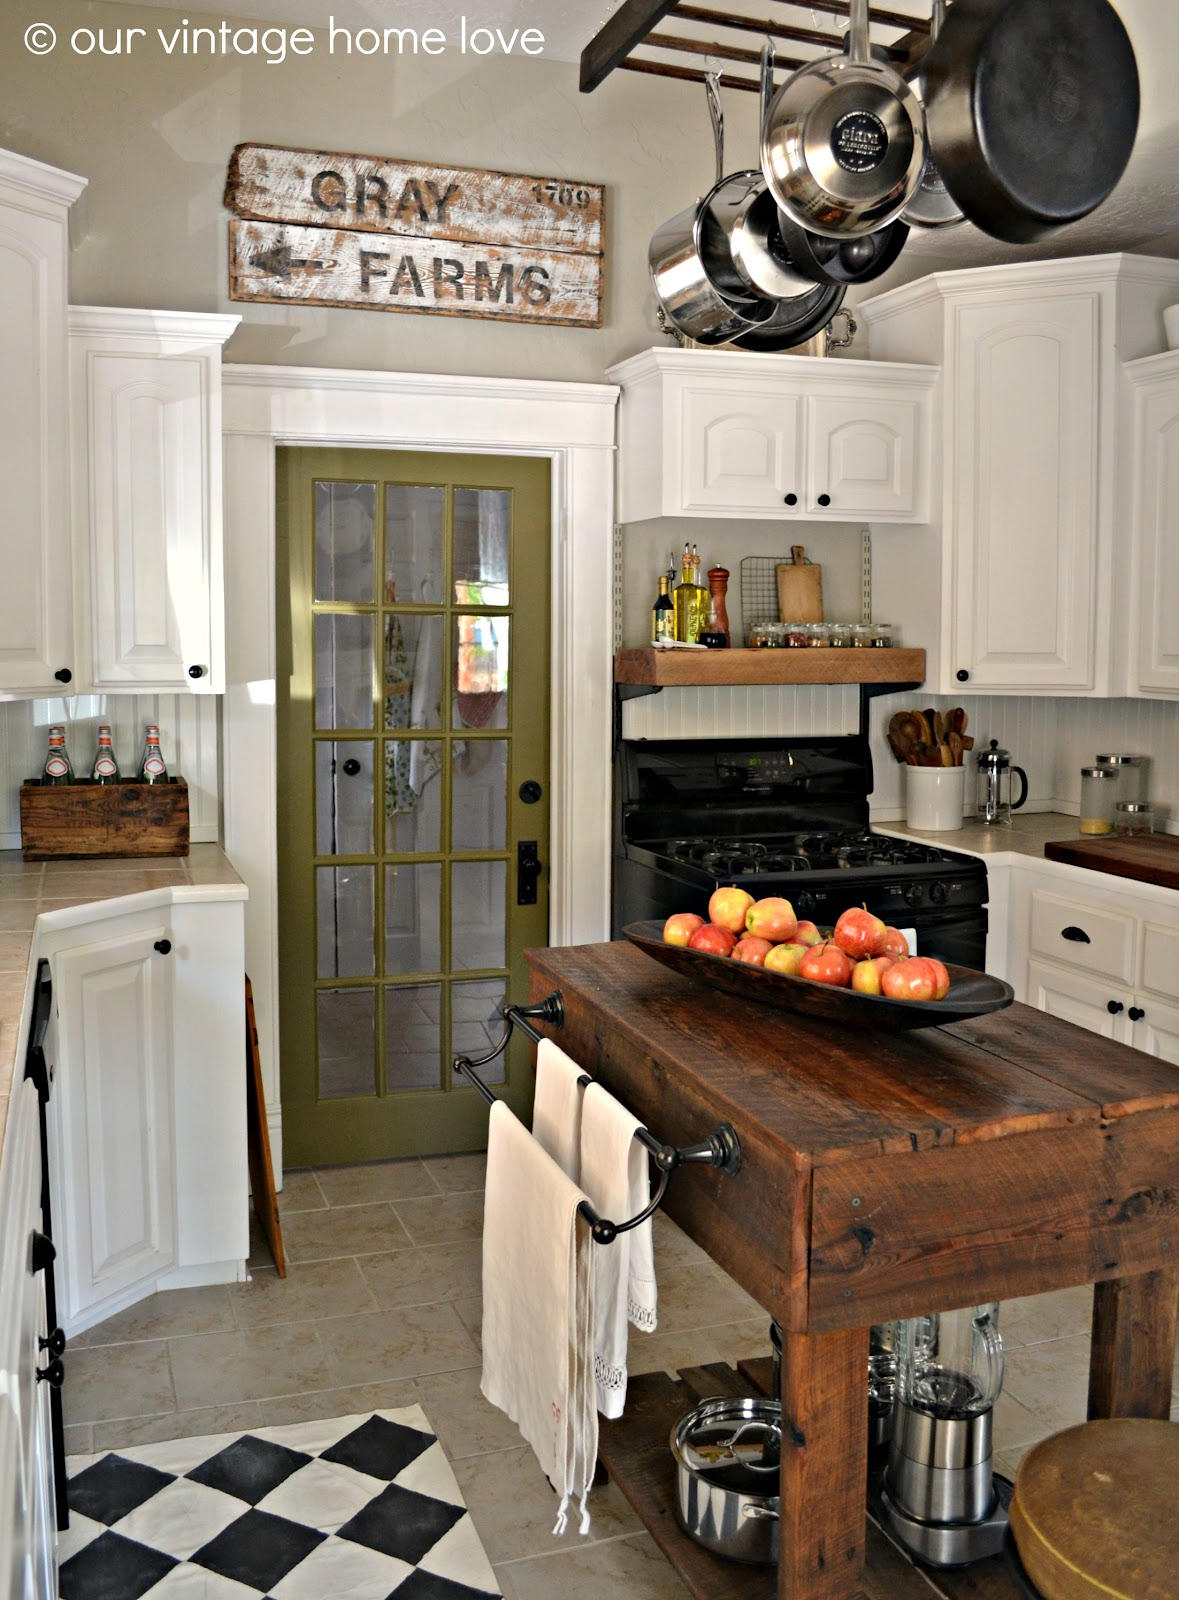 32 Cozy Vintage Kitchen Designs That You'll Love ... on Rustic:1Gdhjdx6F3G= Farmhouse Kitchen  id=97752